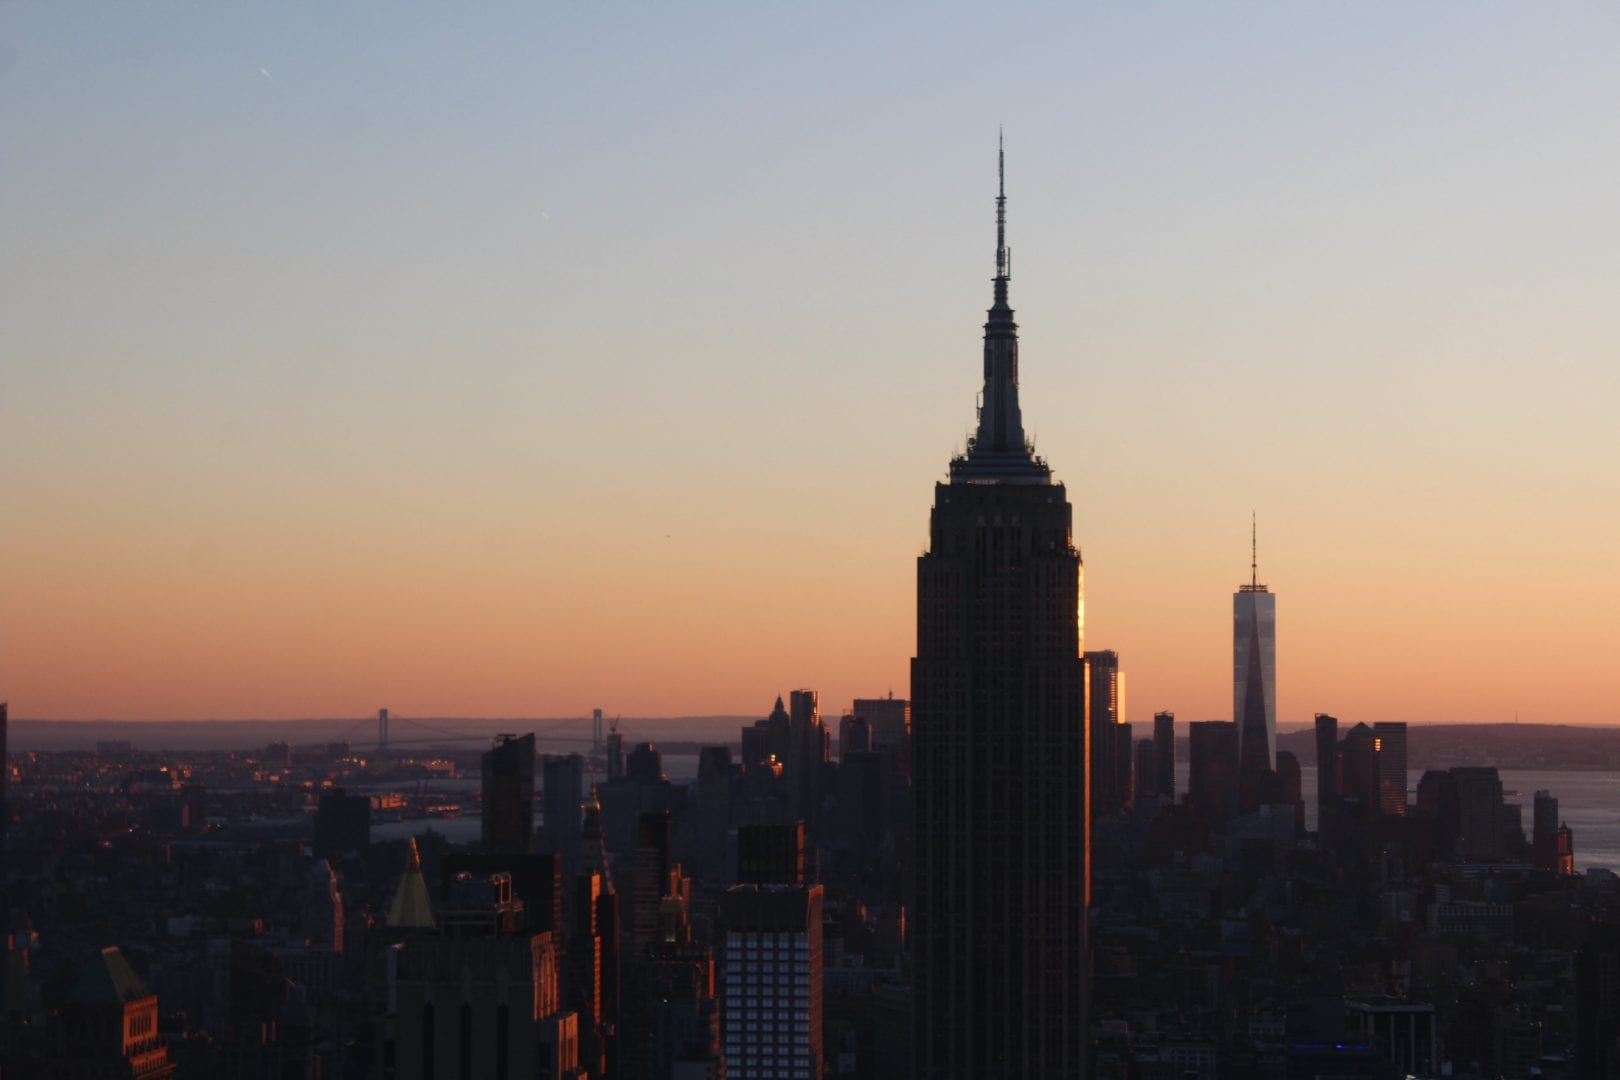 a skyline with a tower prominently shown at sunset